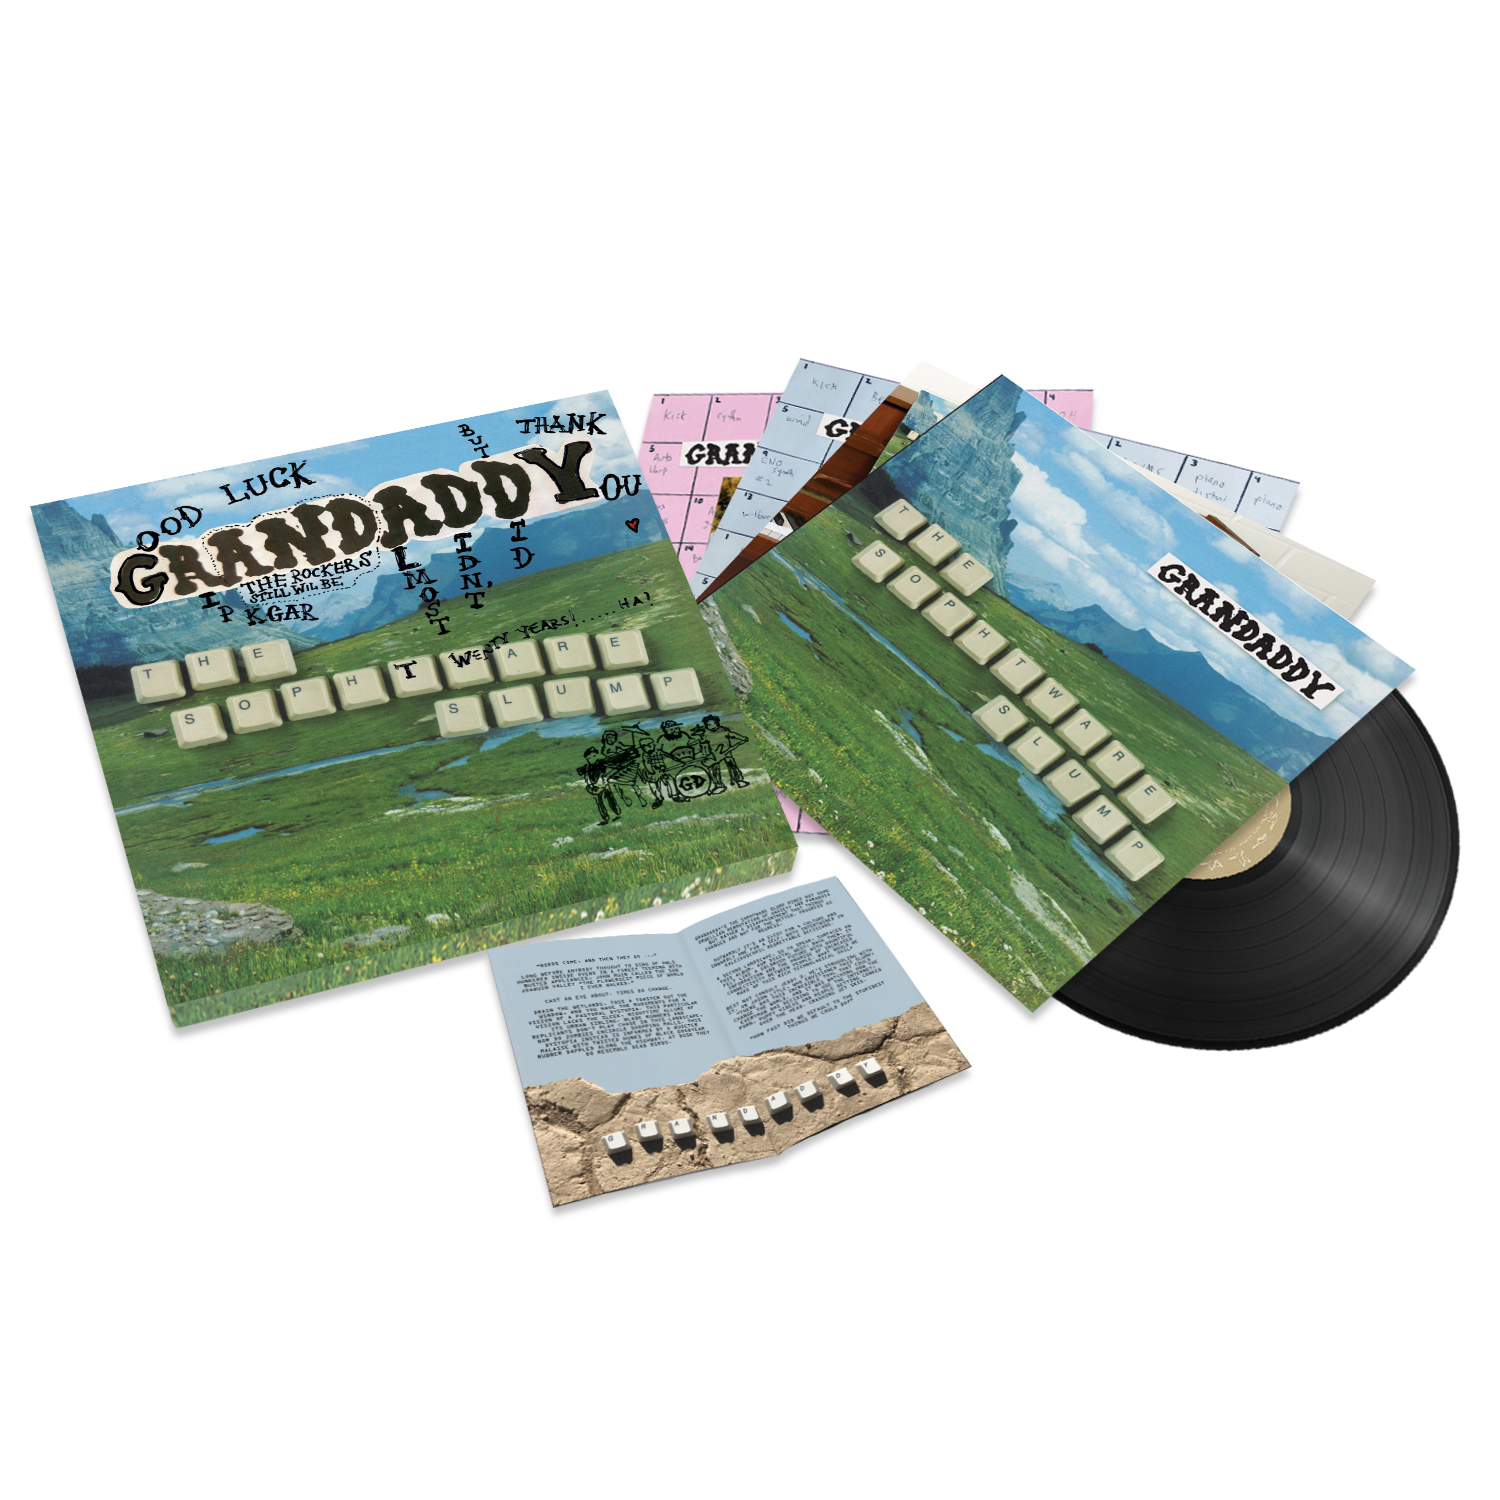 Grandaddy - The Sophtware Slump 20th Anniversary Collection - 4 LP Boxed Set Bundle